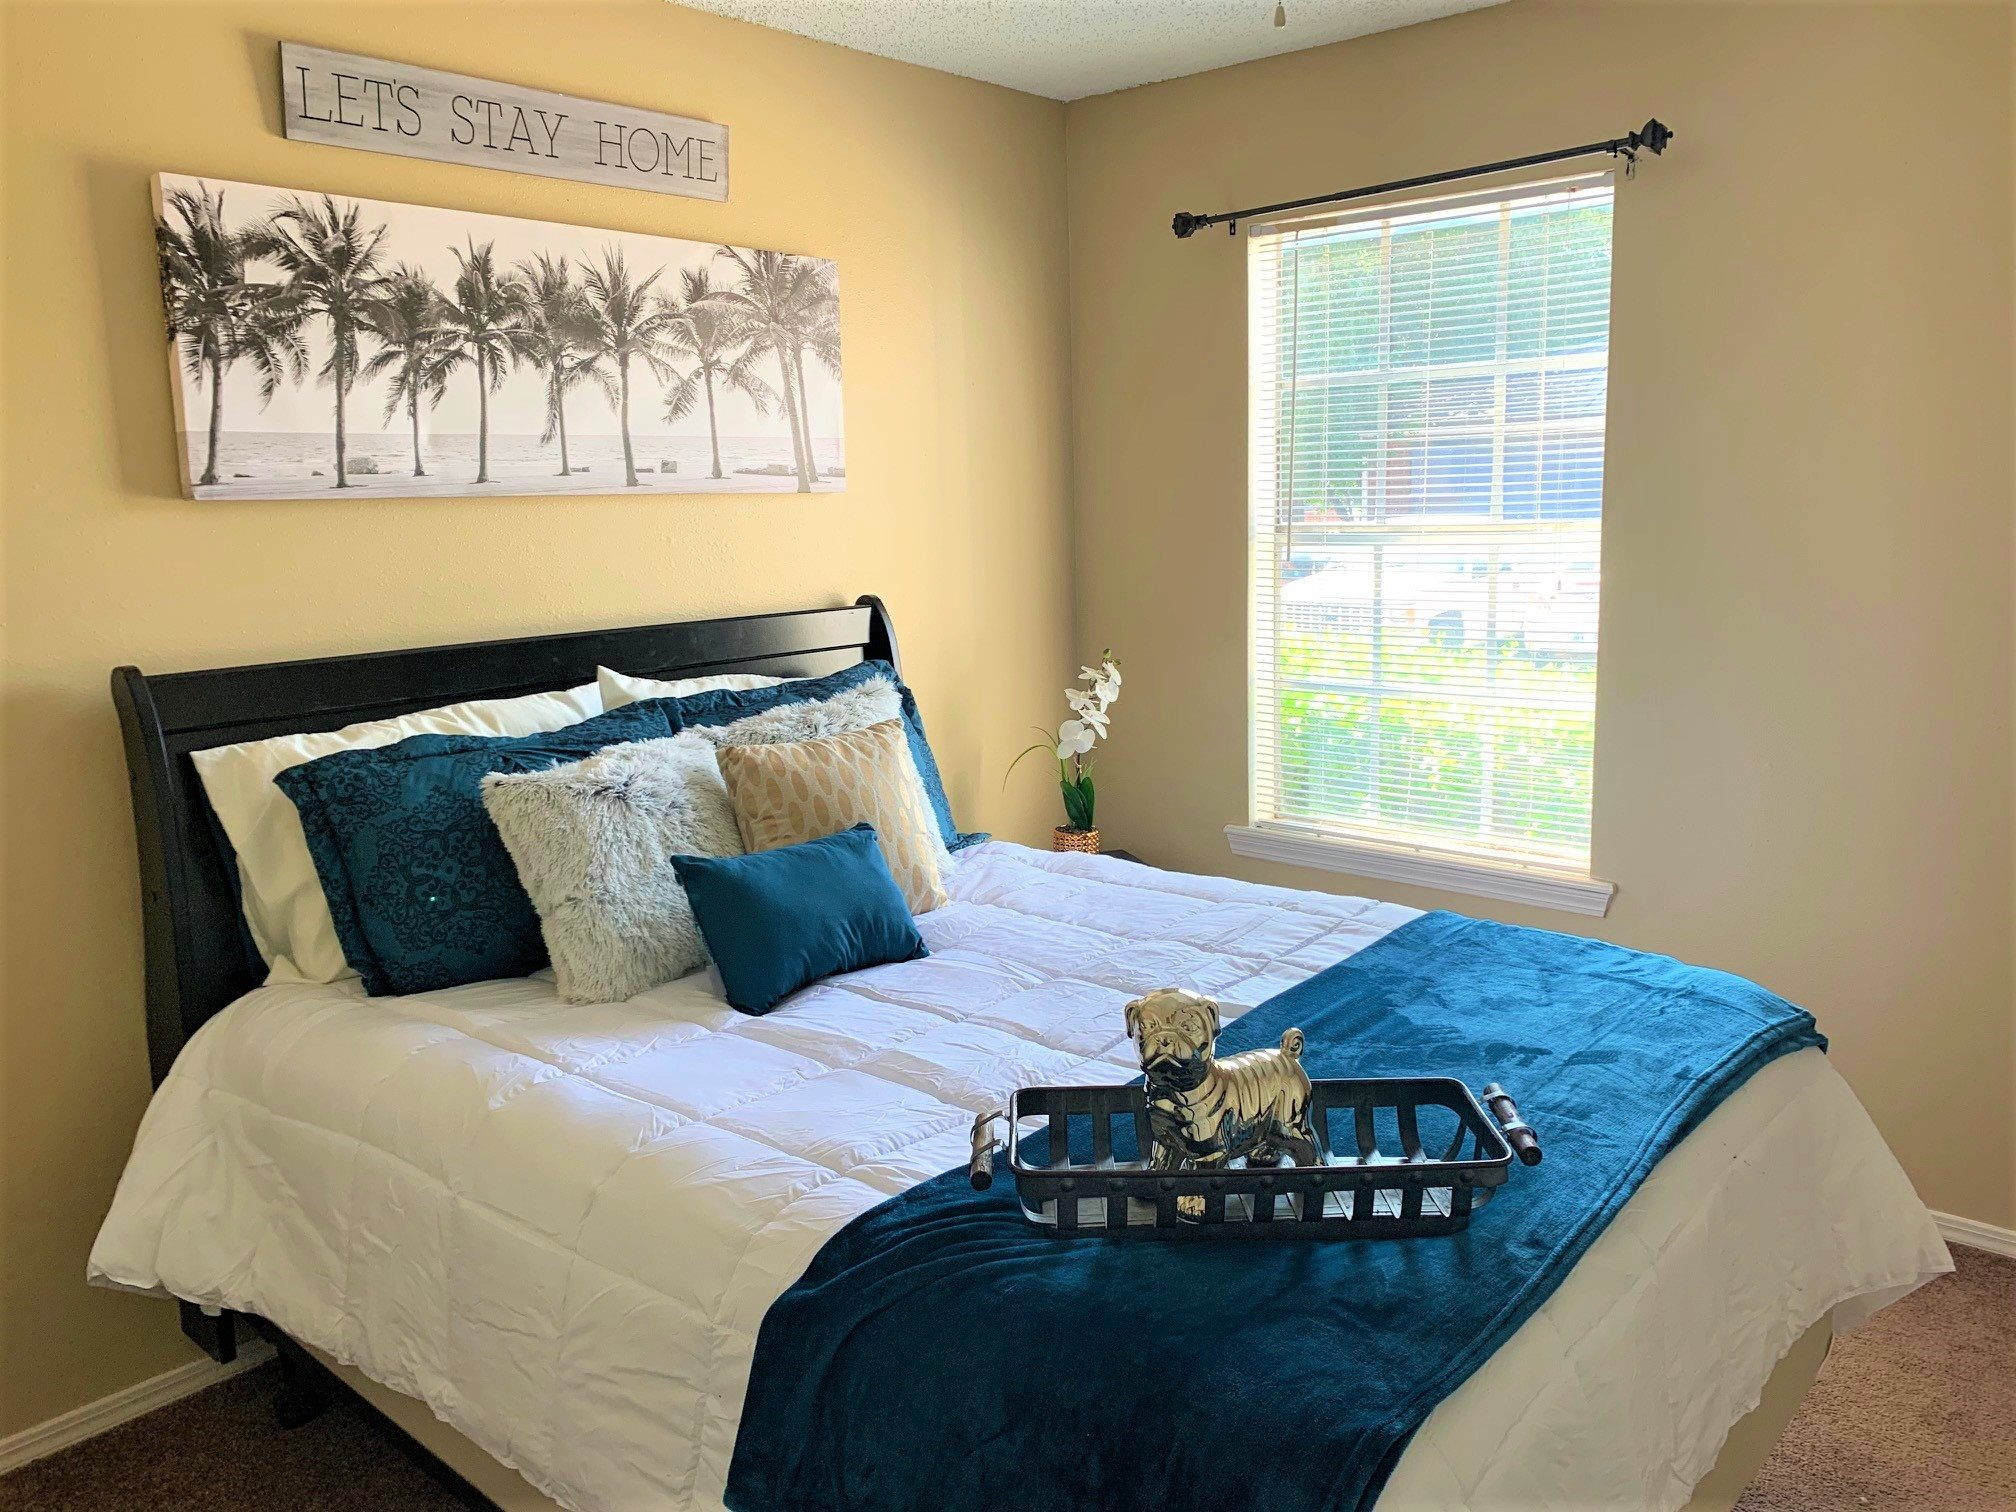 apartments in Lawton OK for rent